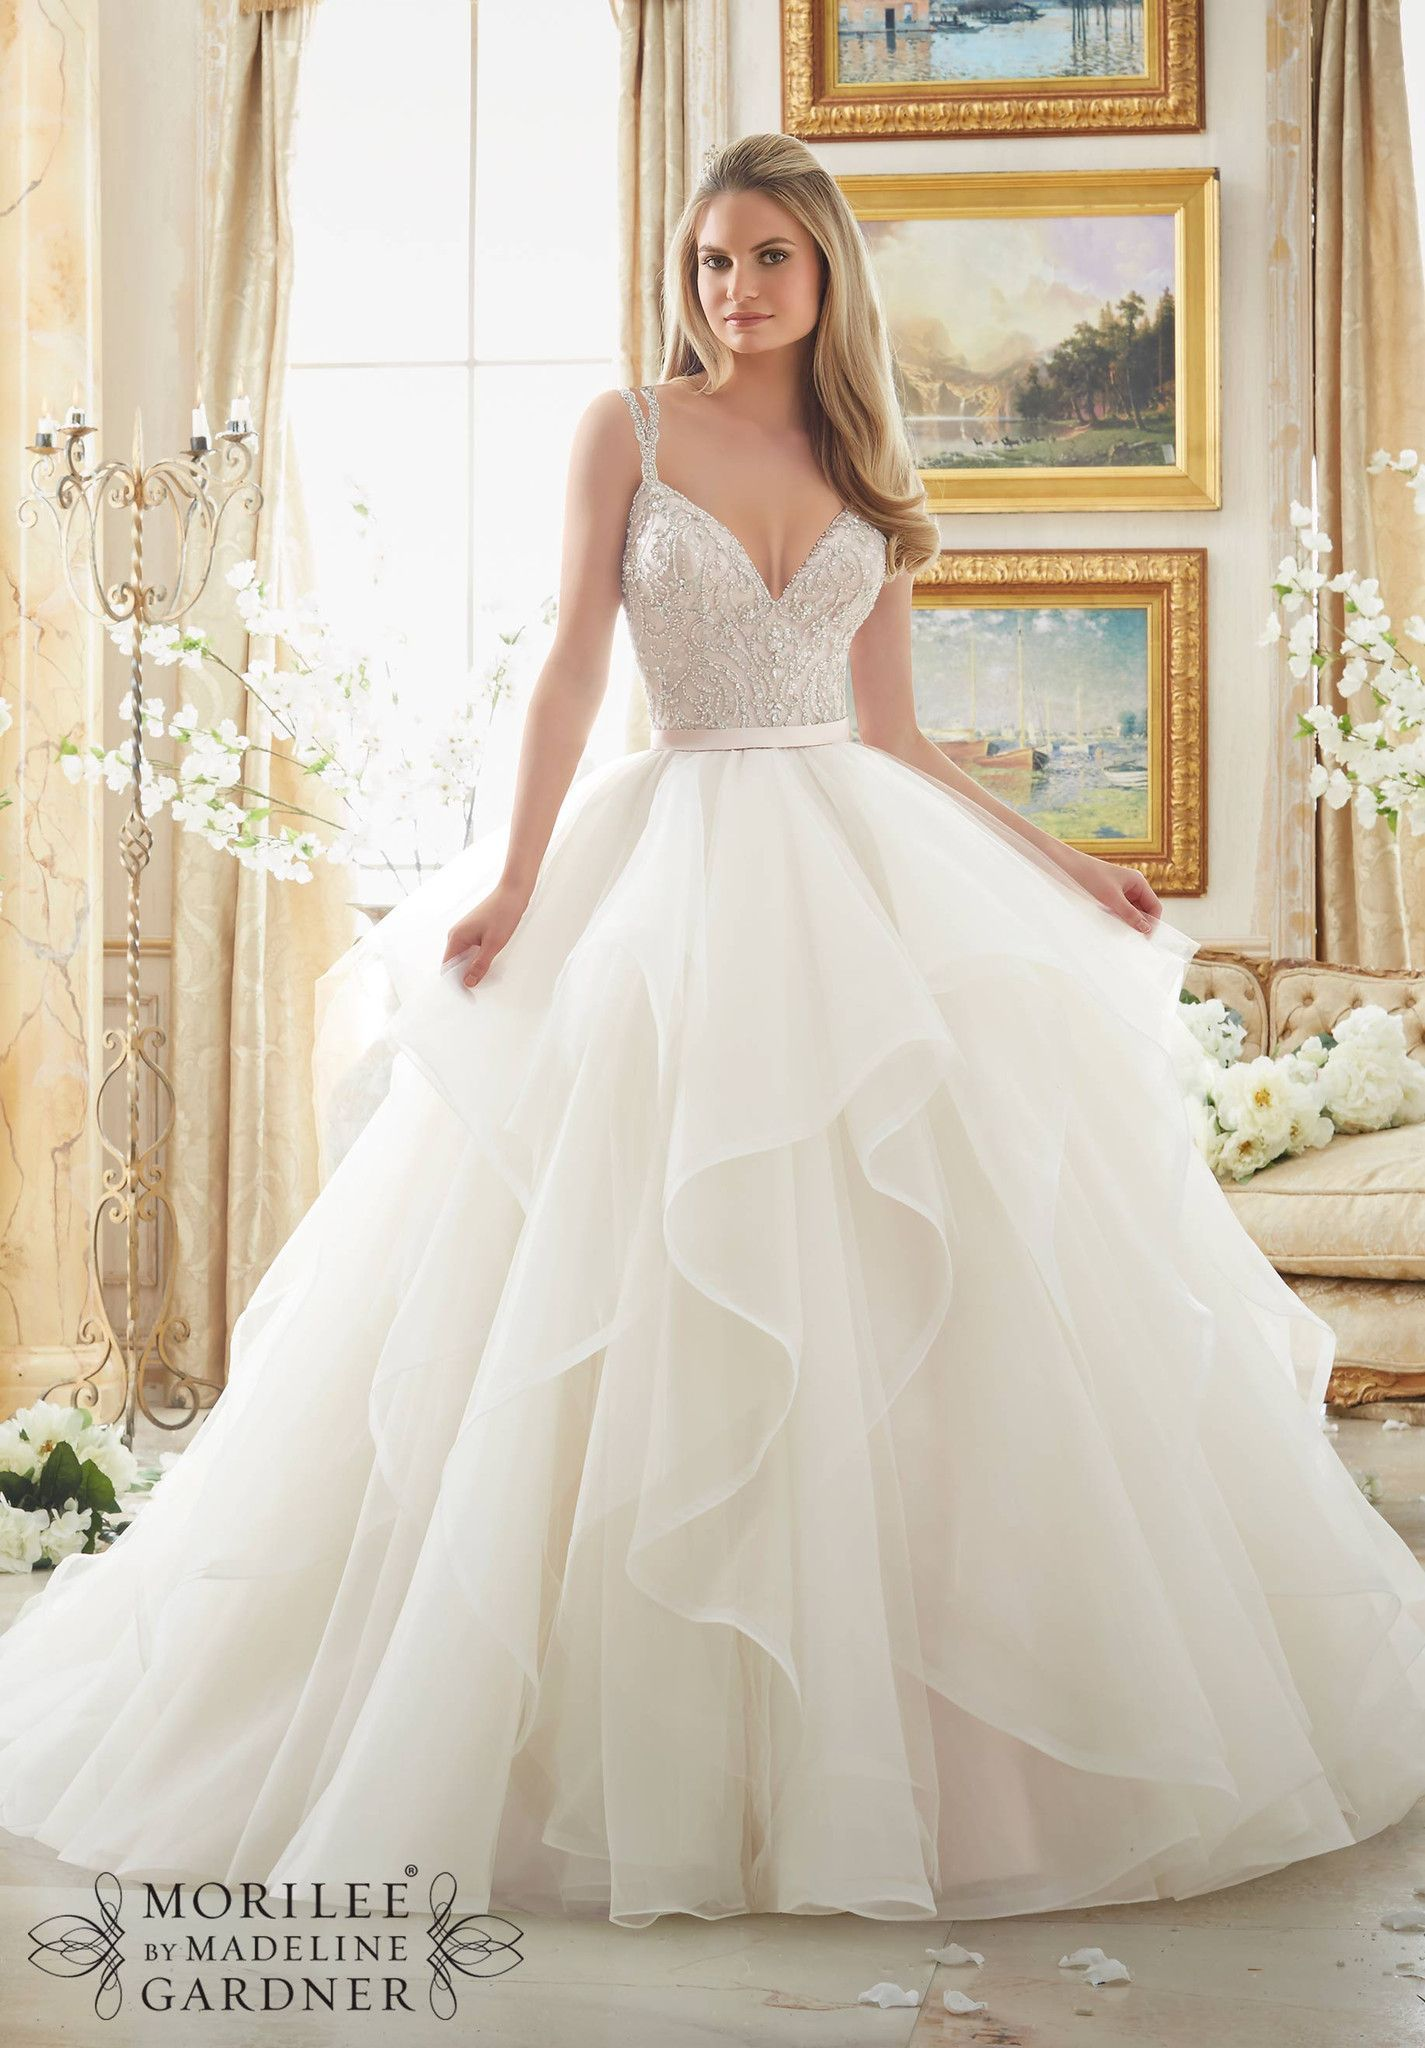 Mori Lee - 2887 - All Dressed Up, Bridal Gown   Wedding Hairstyles ...